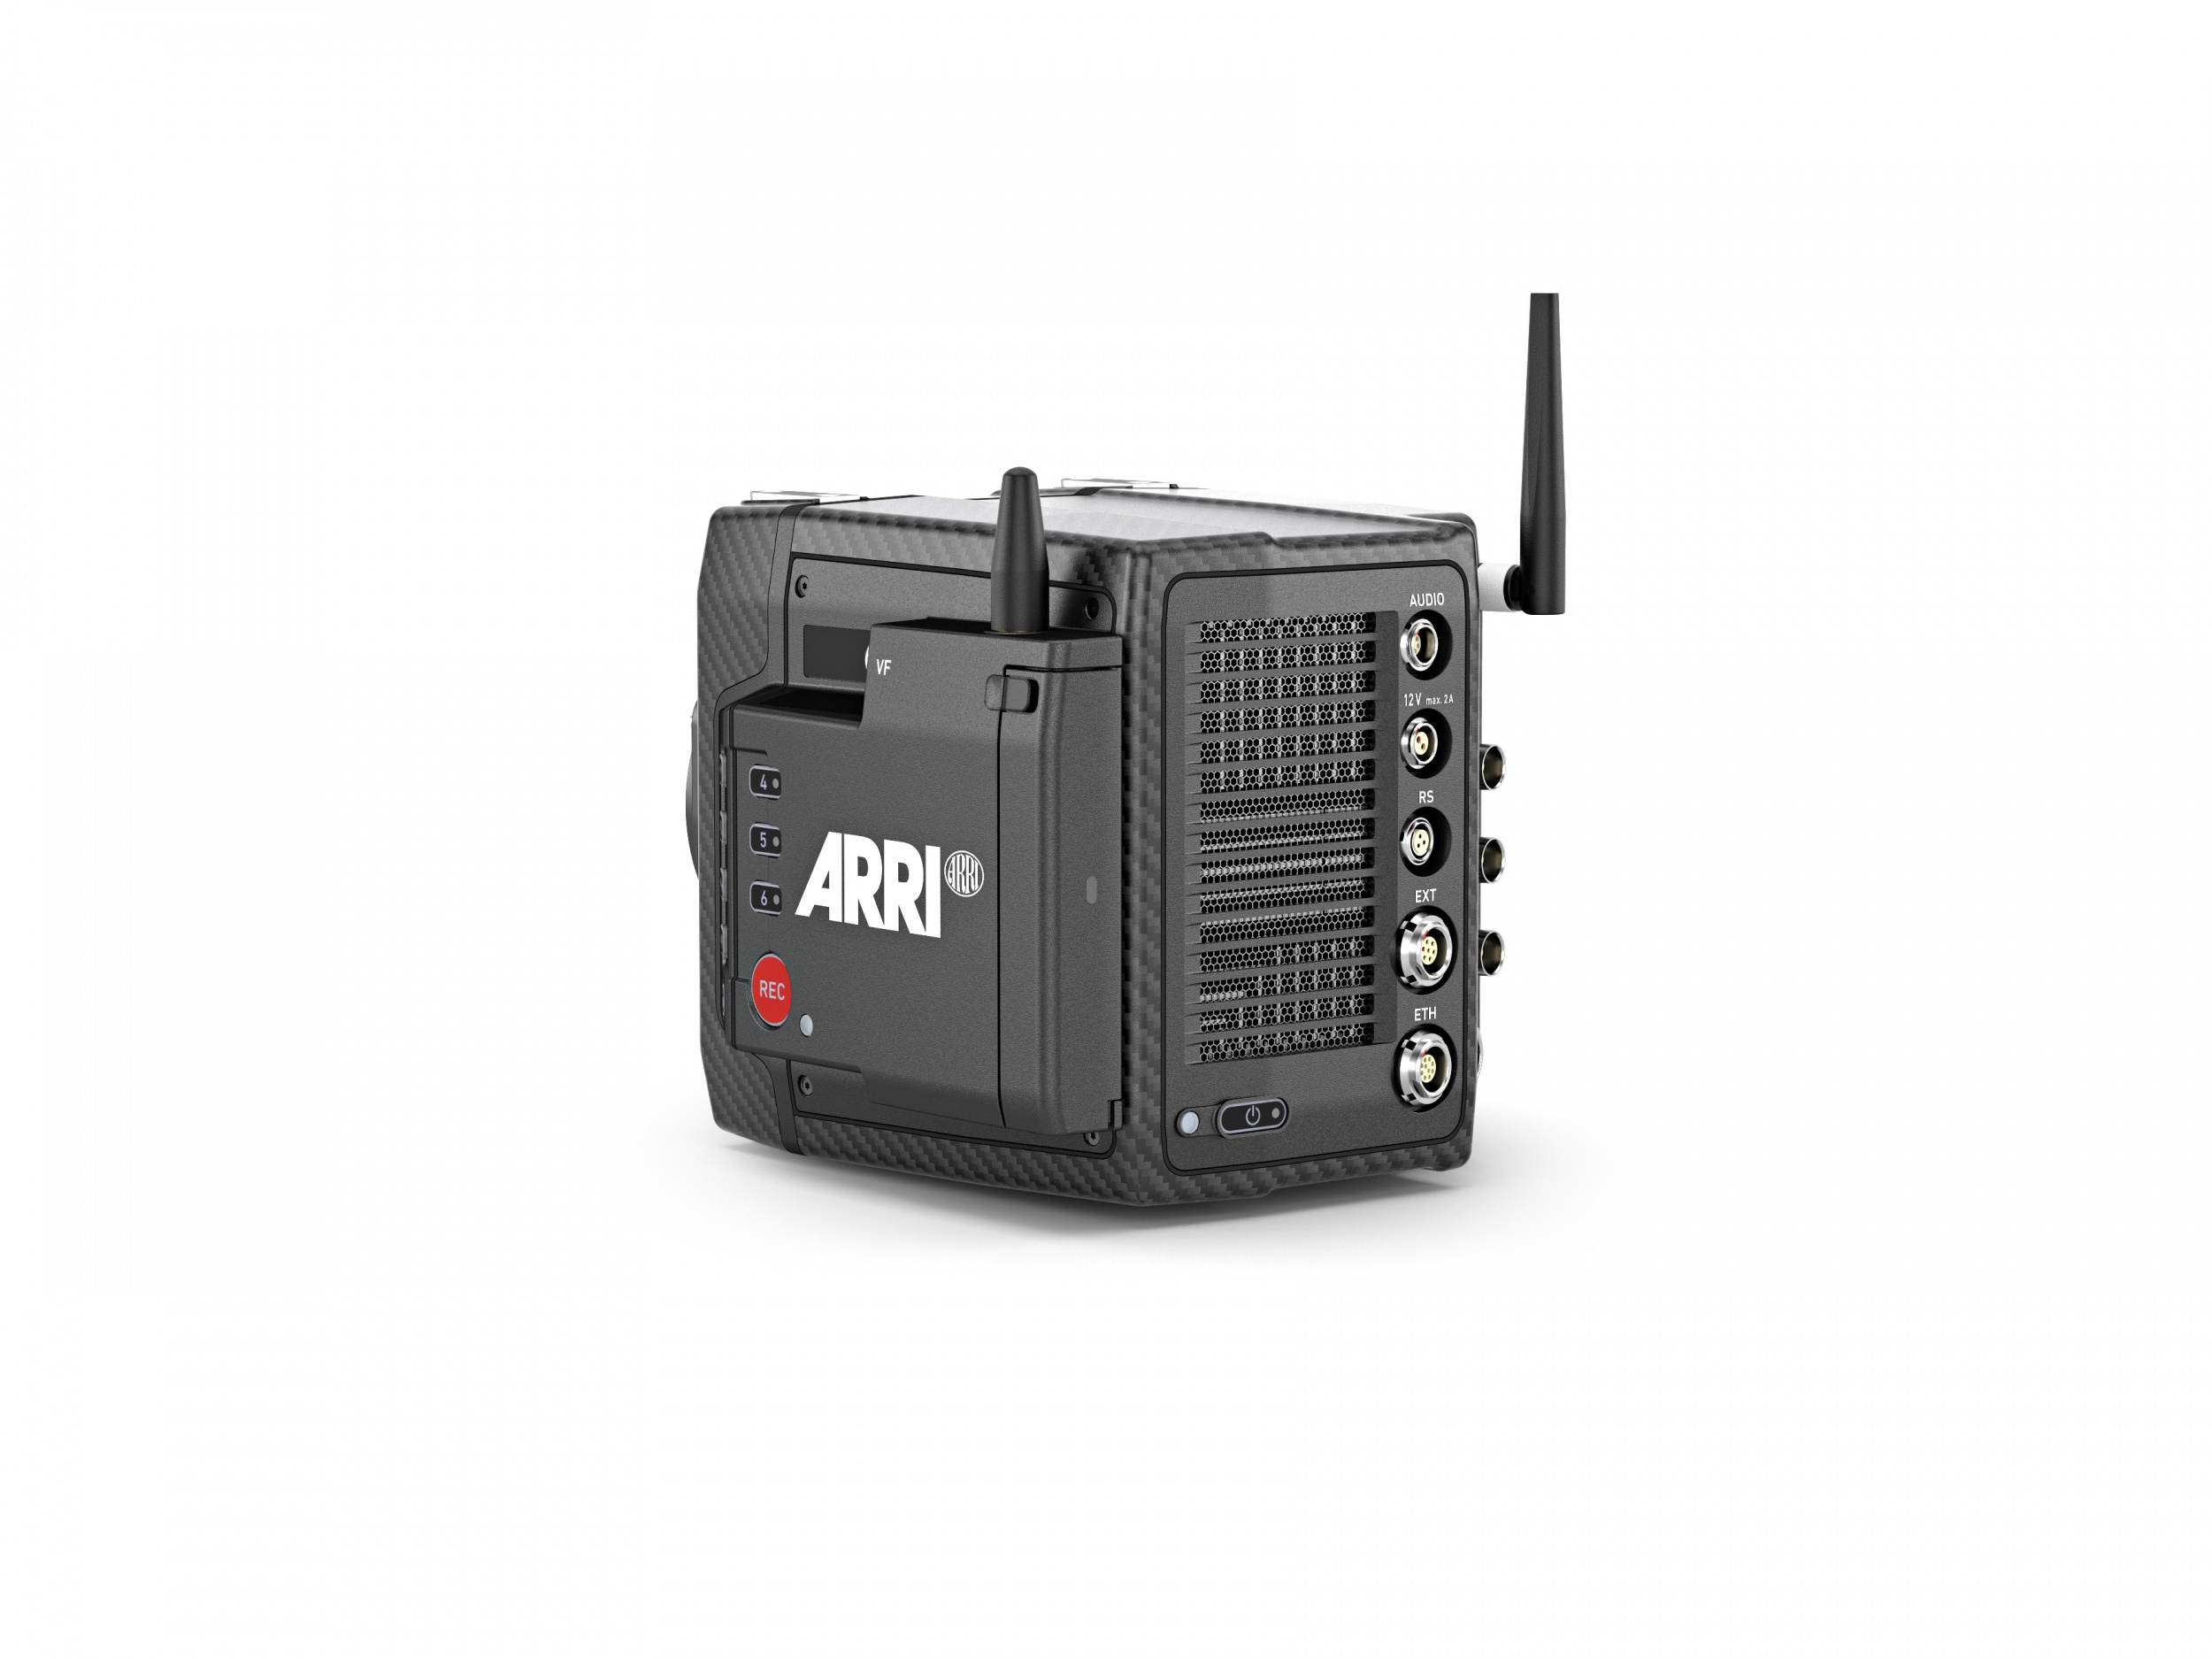 k0.0024313  alexa mini lf ready to shoot set v